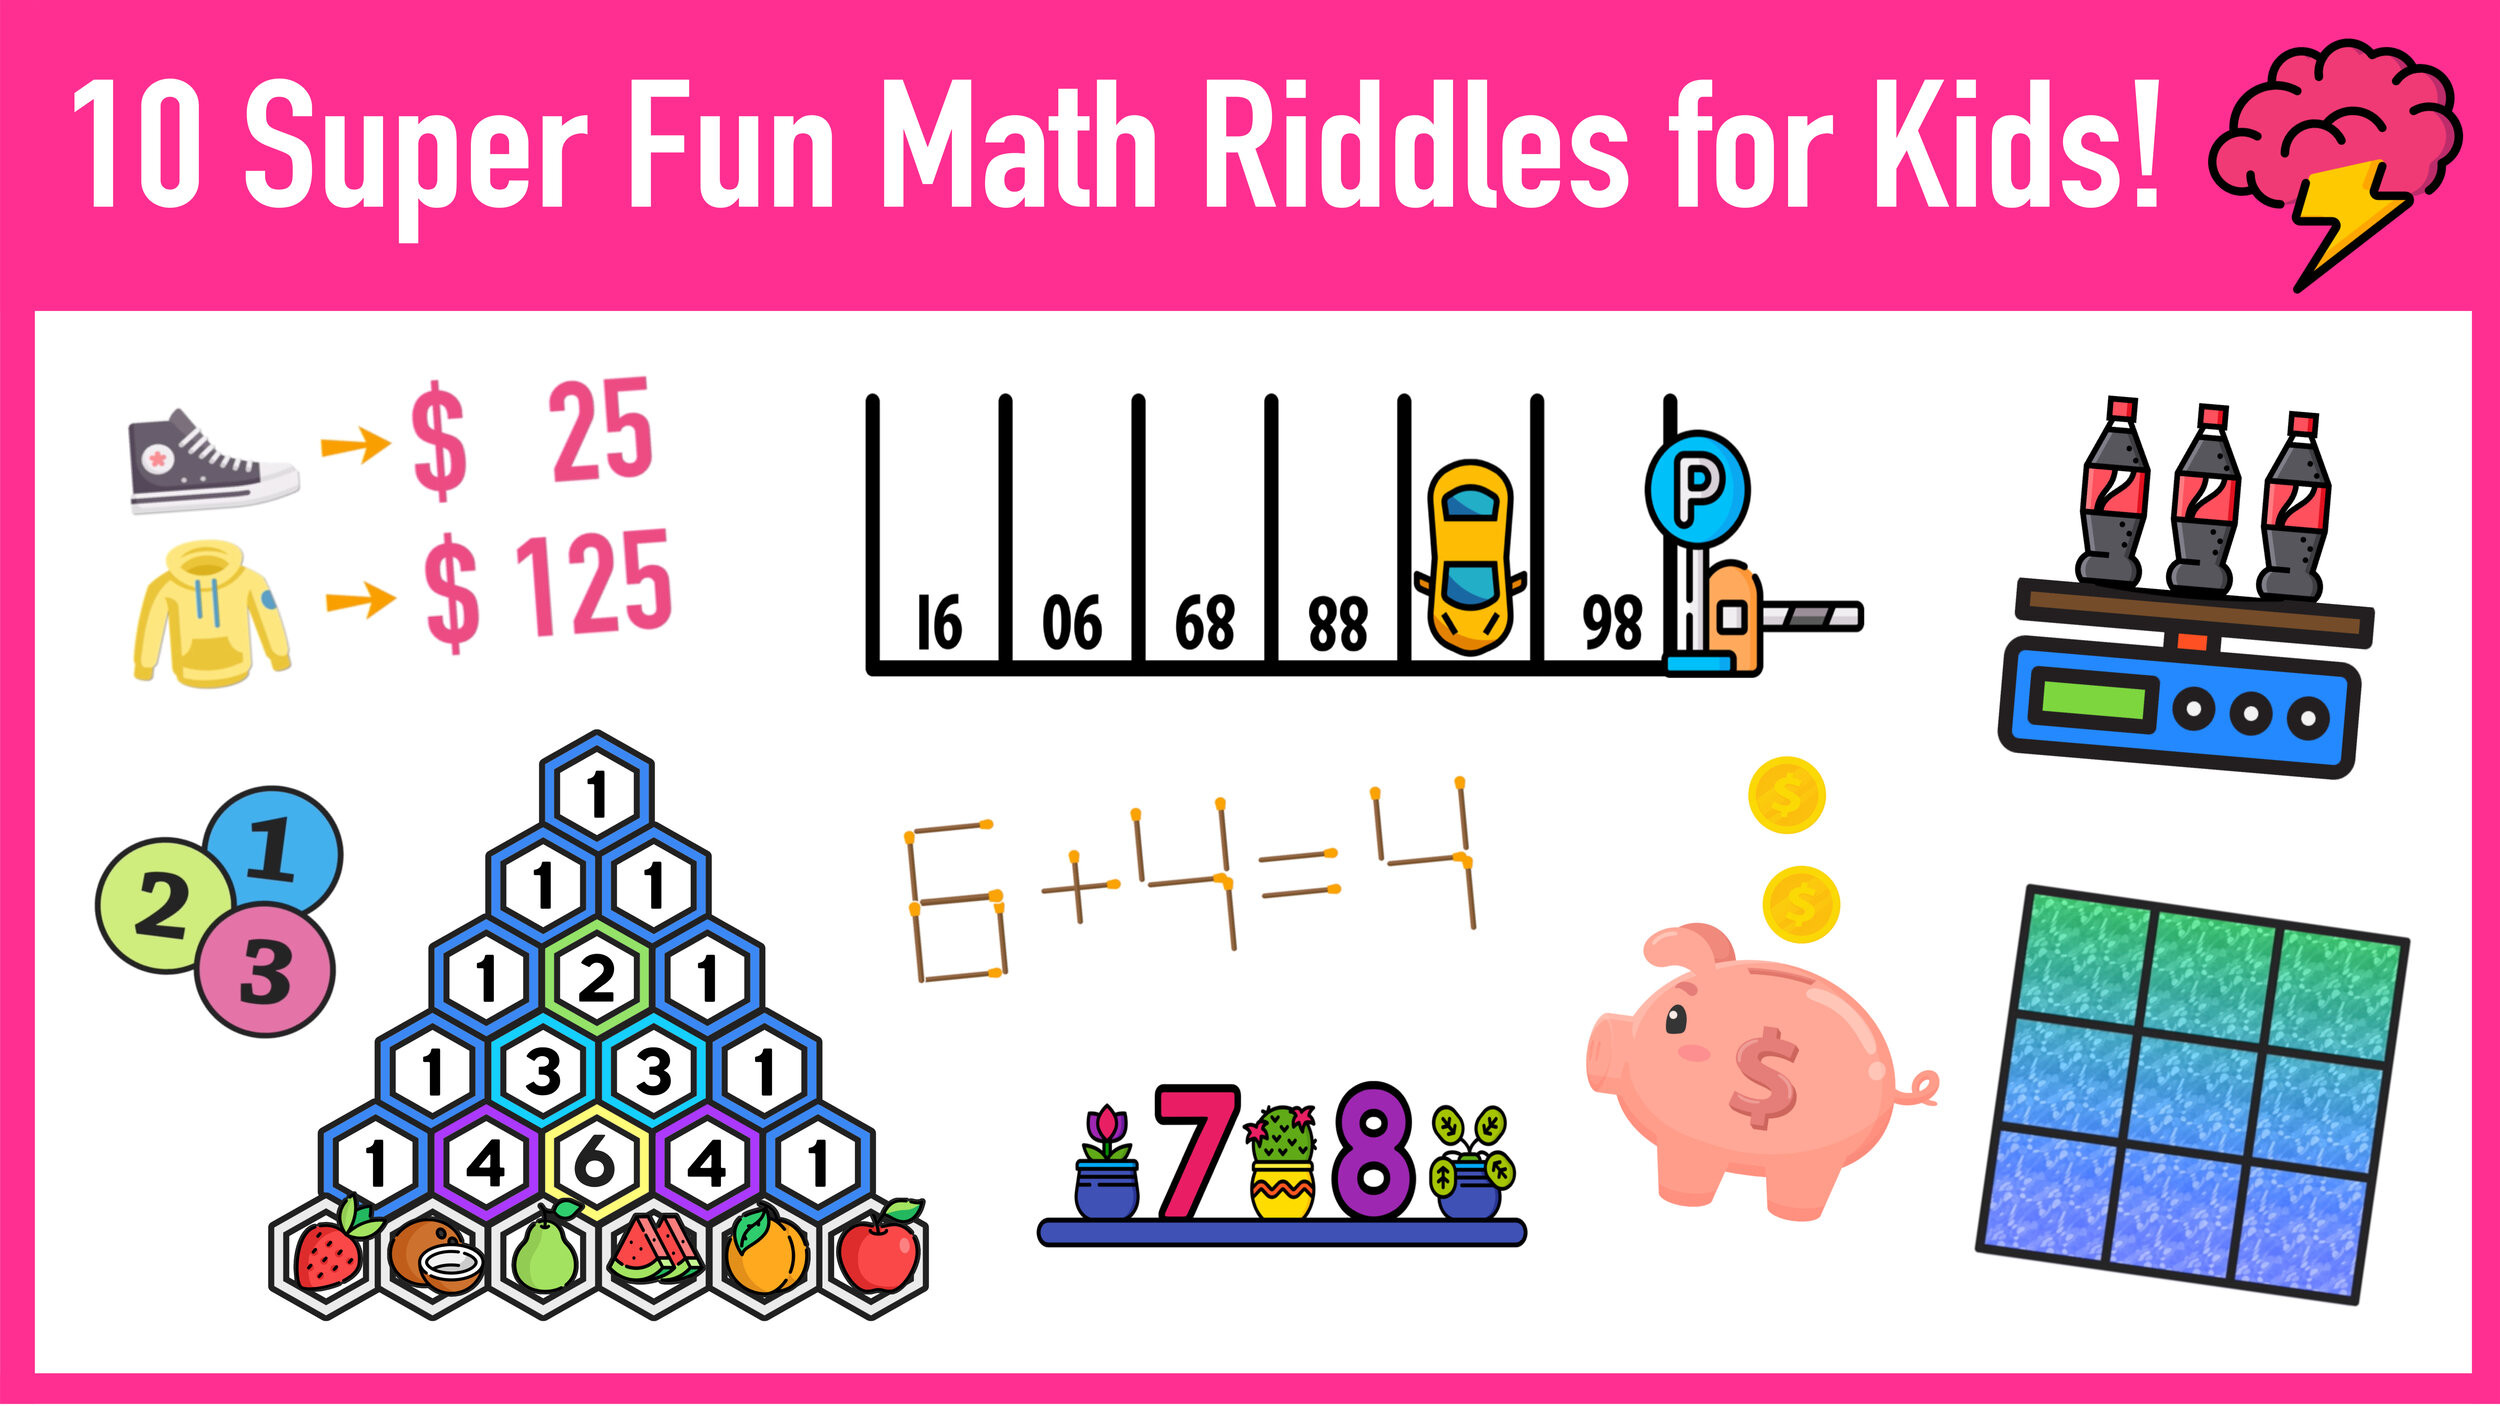 Challenge Math Worksheets 10 Super Fun Math Riddles for Kids Ages 10 with Answers